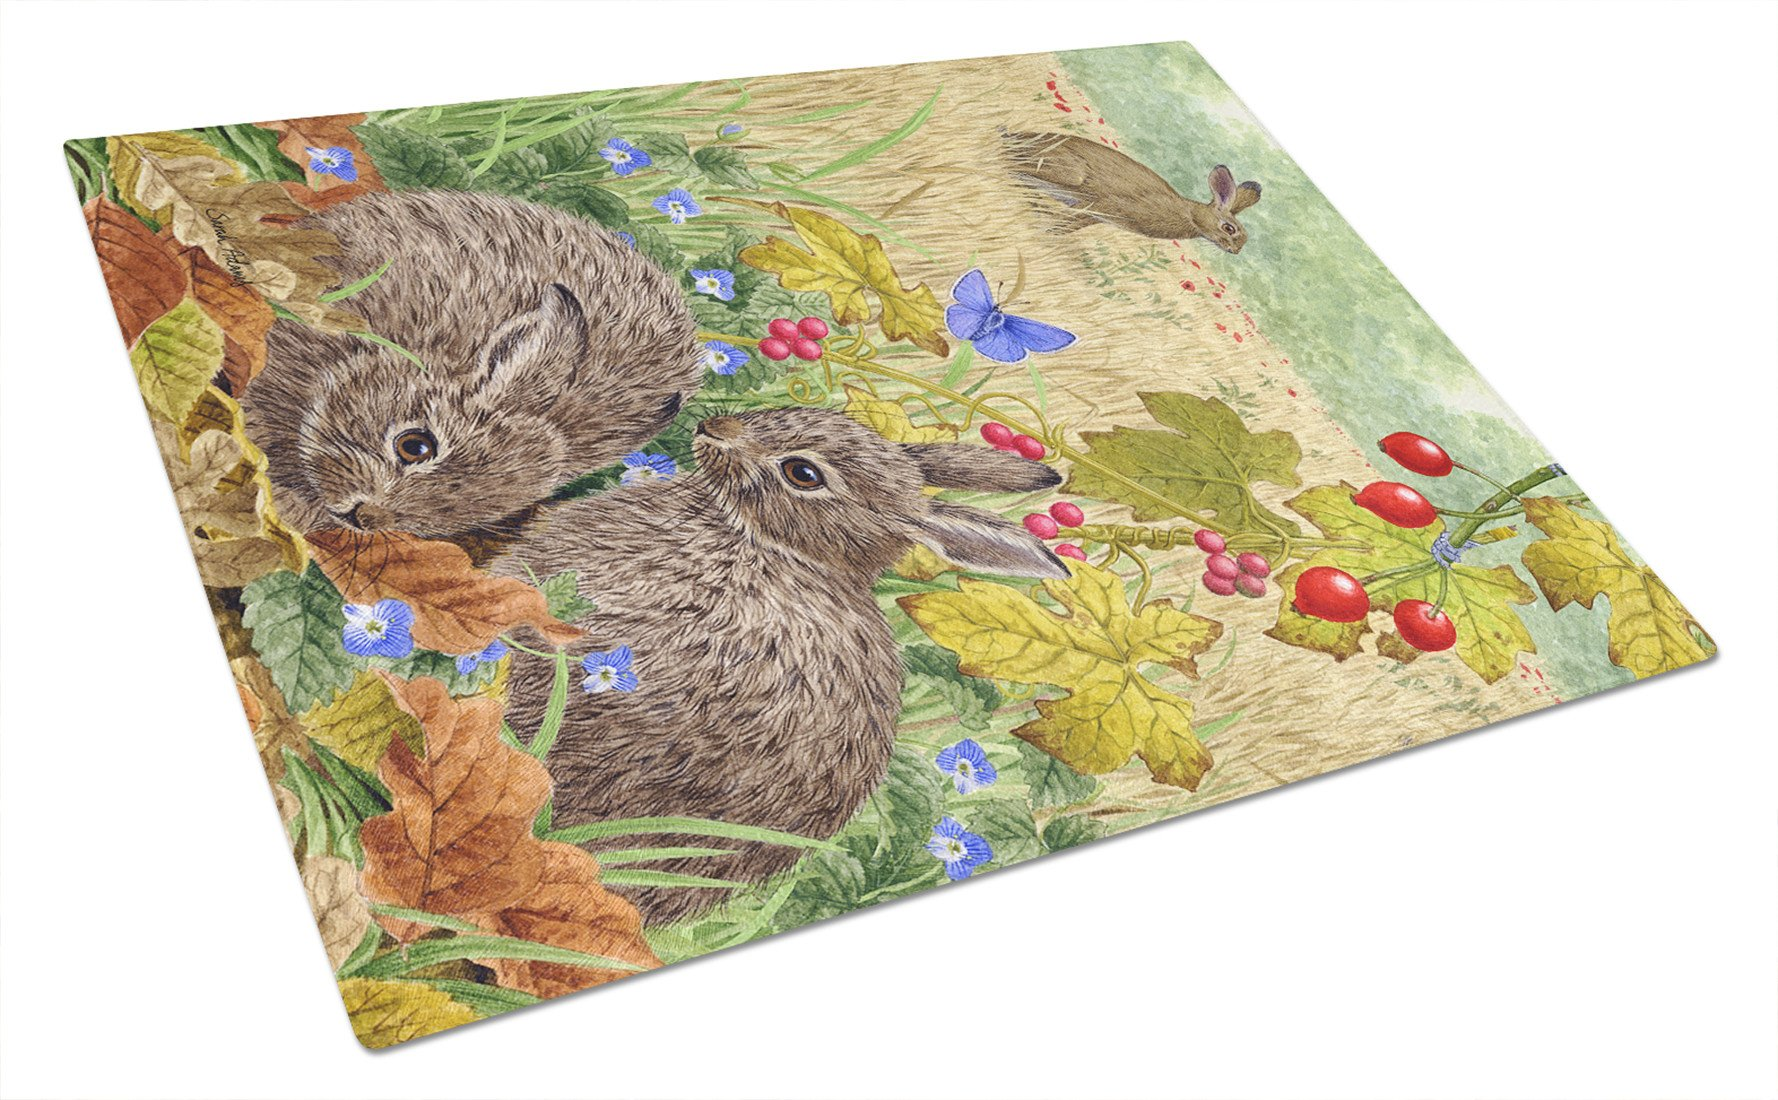 Leverets and Rabbit Glass Cutting Board Large ASA2140LCB by Caroline's Treasures